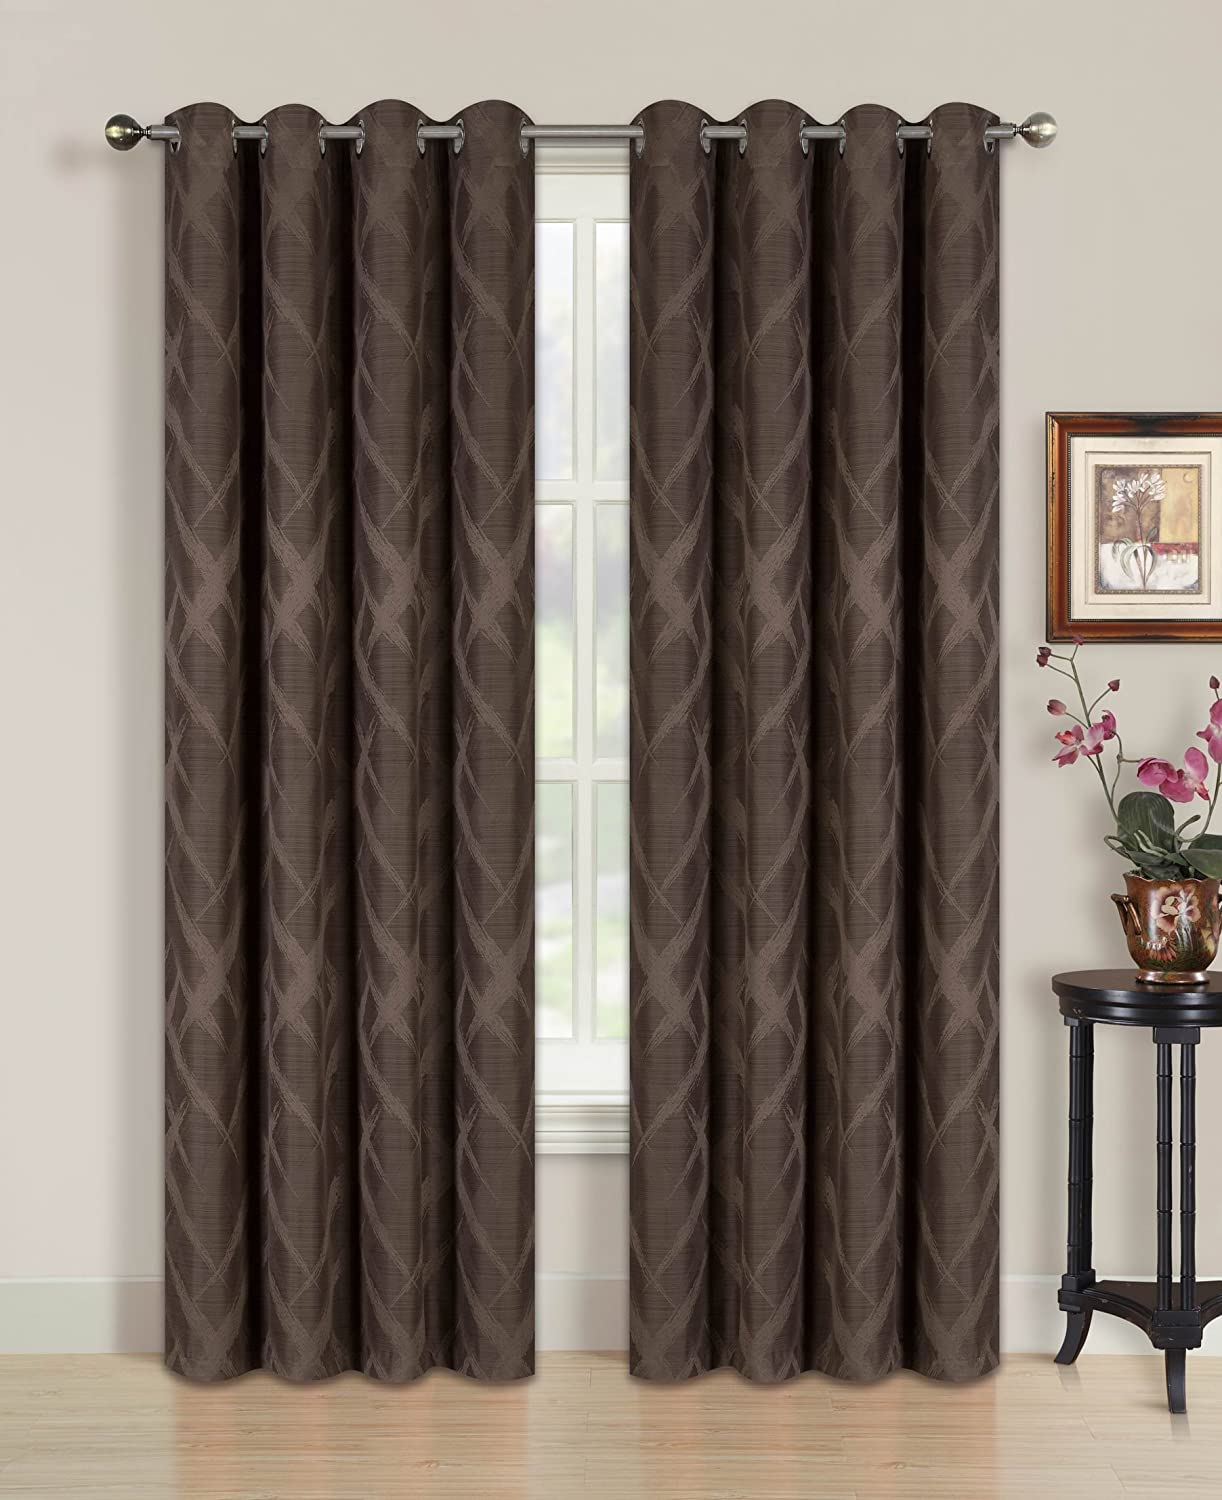 All American Collection New 2 Panel Solid Slashed Diamond Design Blackout Curtain Set Coffee